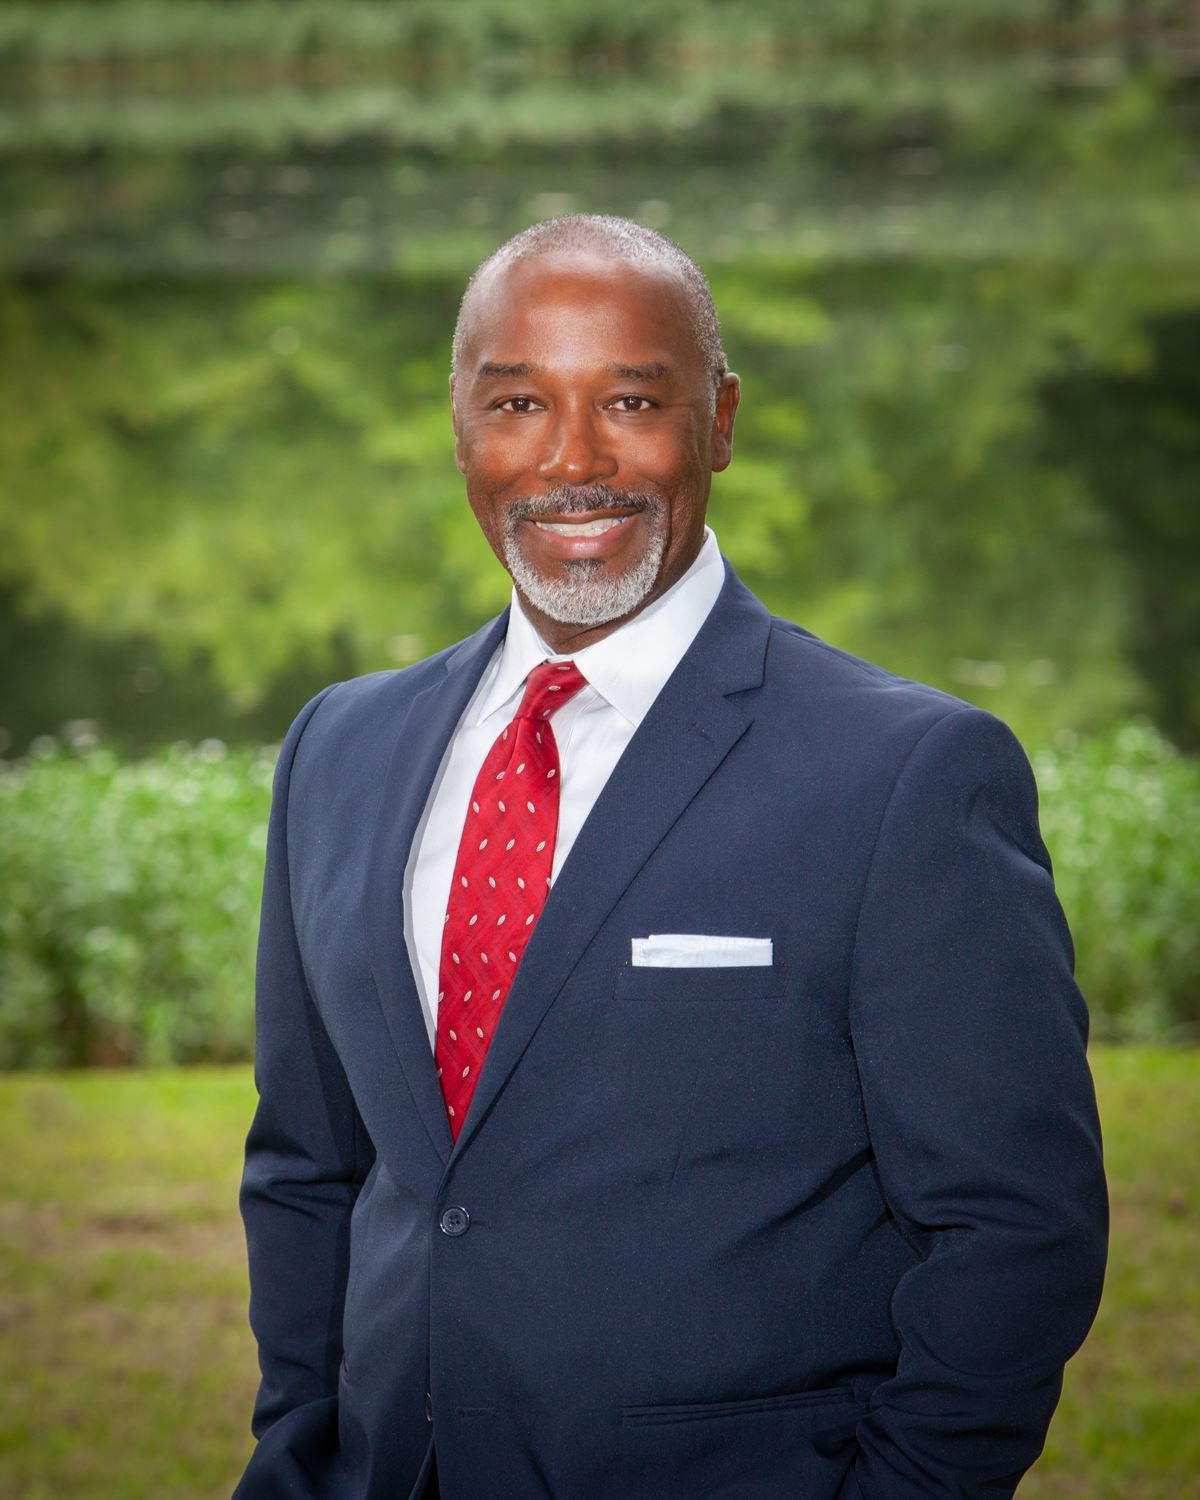 Council Member Gregory Glover